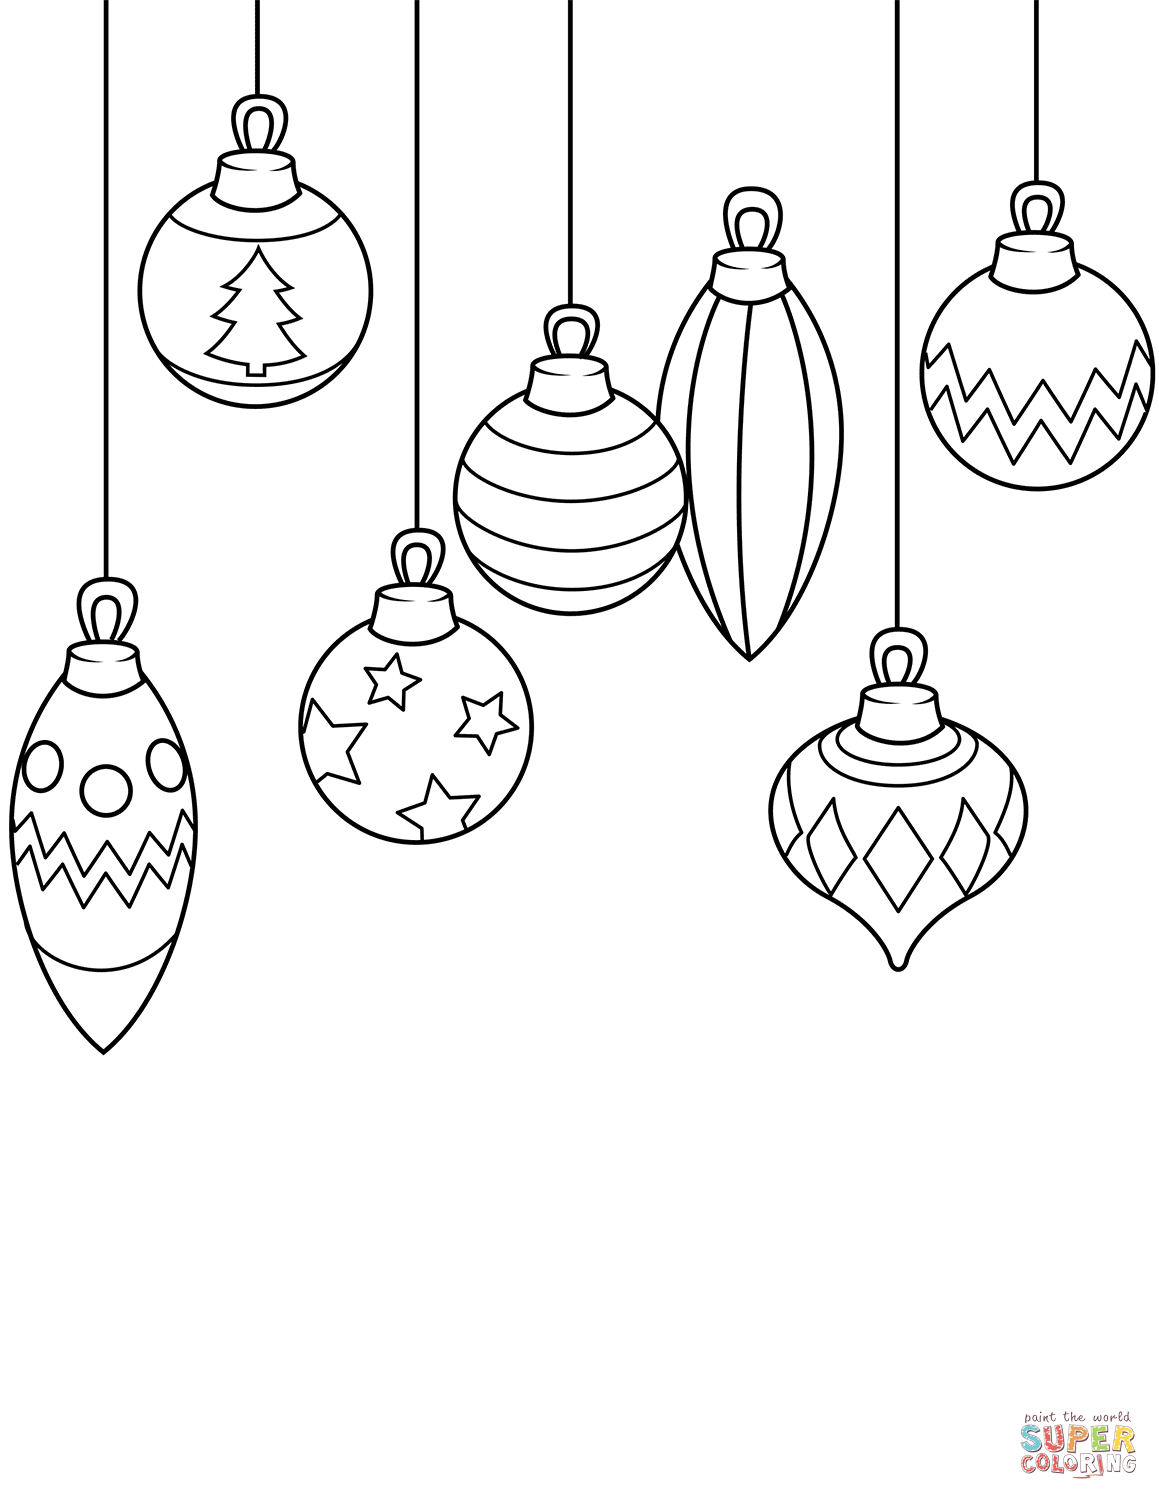 Simple Christmas Ornaments Coloring Page Printable Christmas Ornaments Christmas Ornament Coloring Page Easy Christmas Drawings